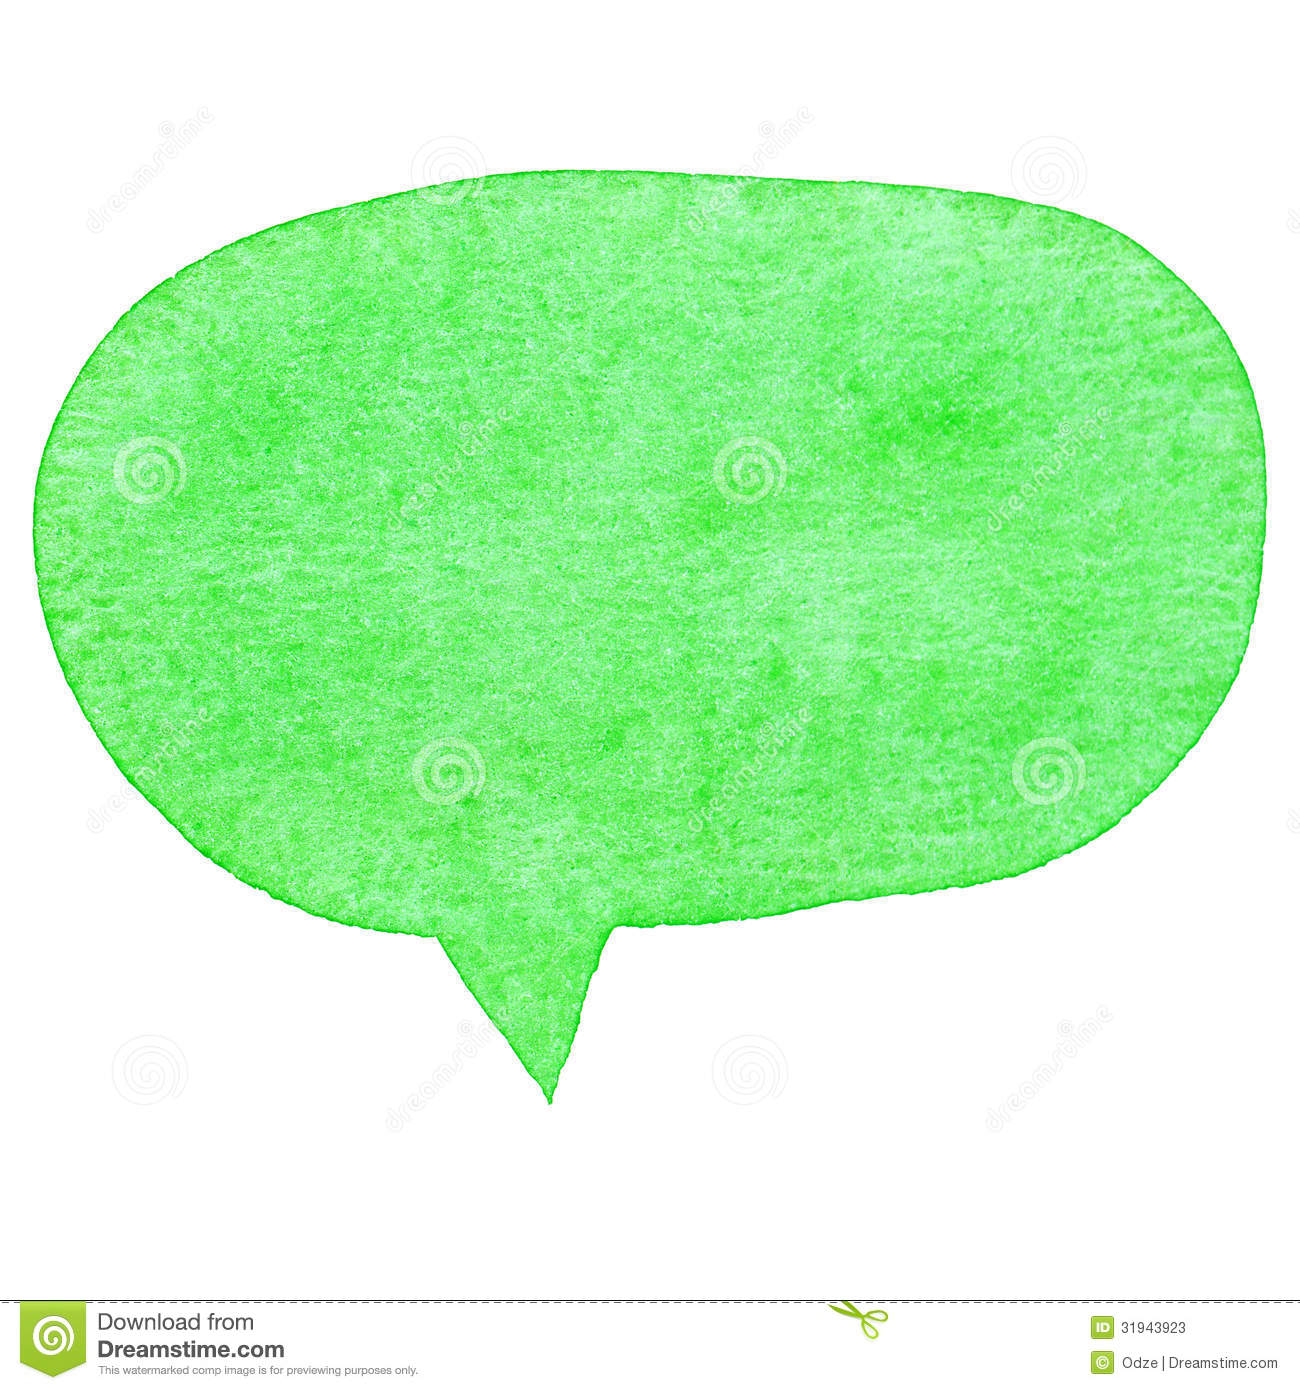 Green watercolor speech bubble isolated on white background.